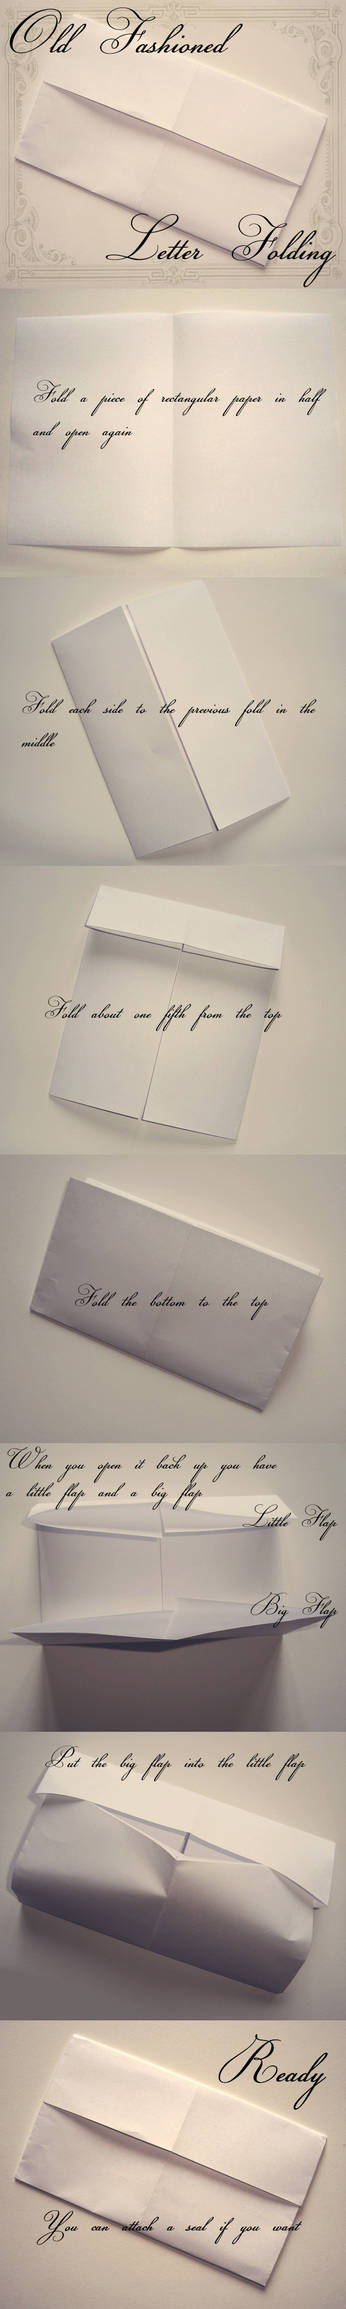 Old Fashioned Letter Folding by VectoriaDesigns